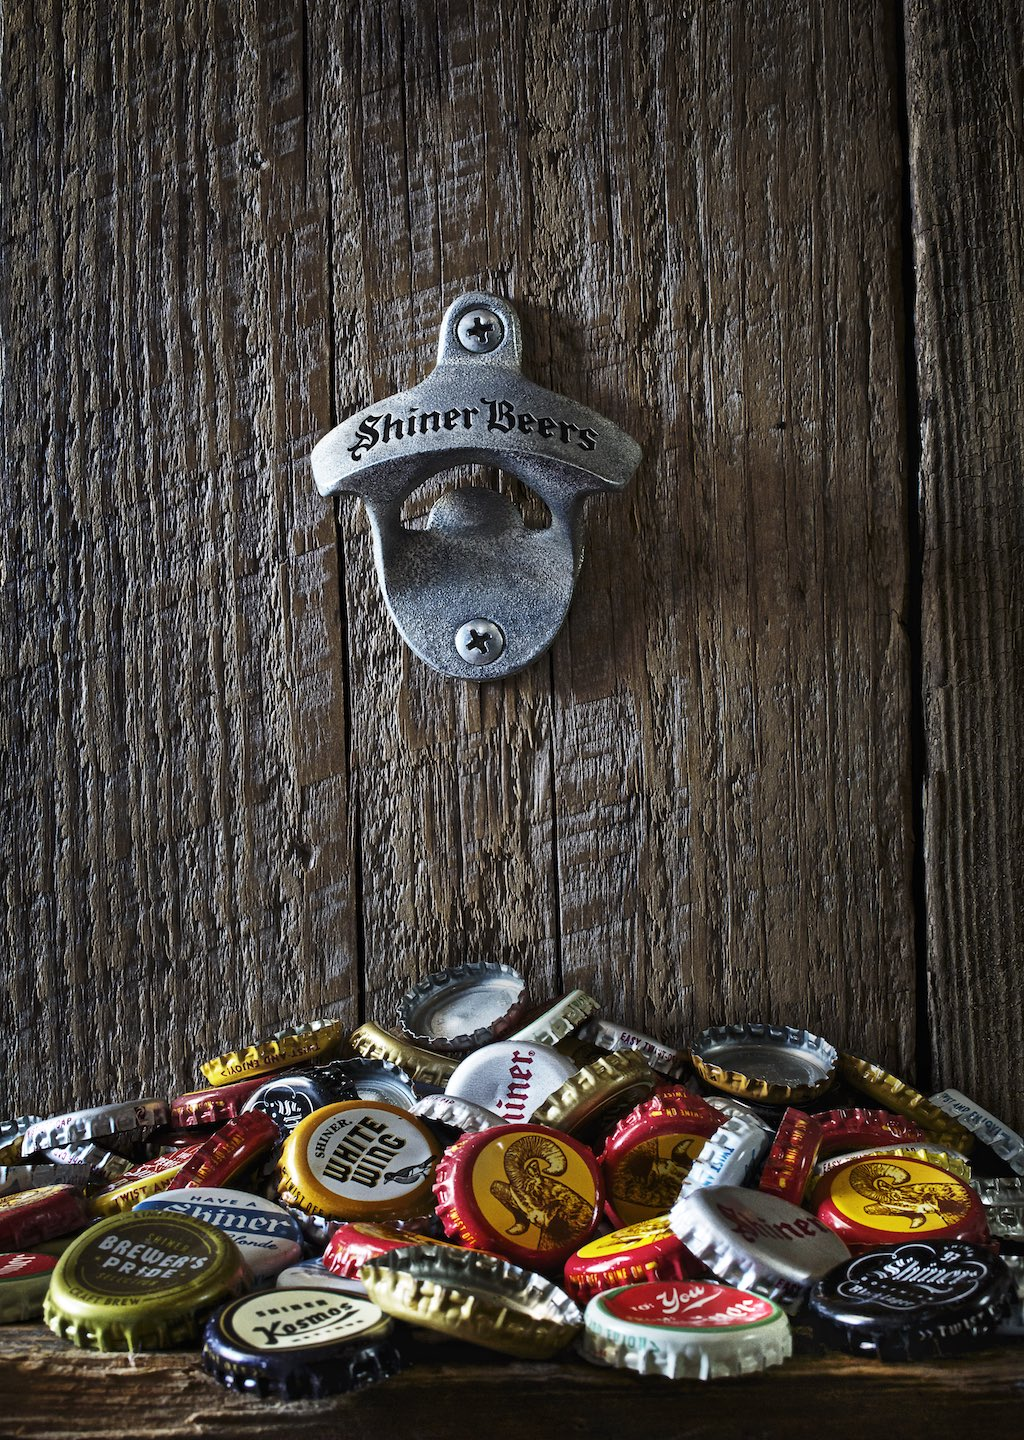 Bottle opener and various beer caps against a wood wall.